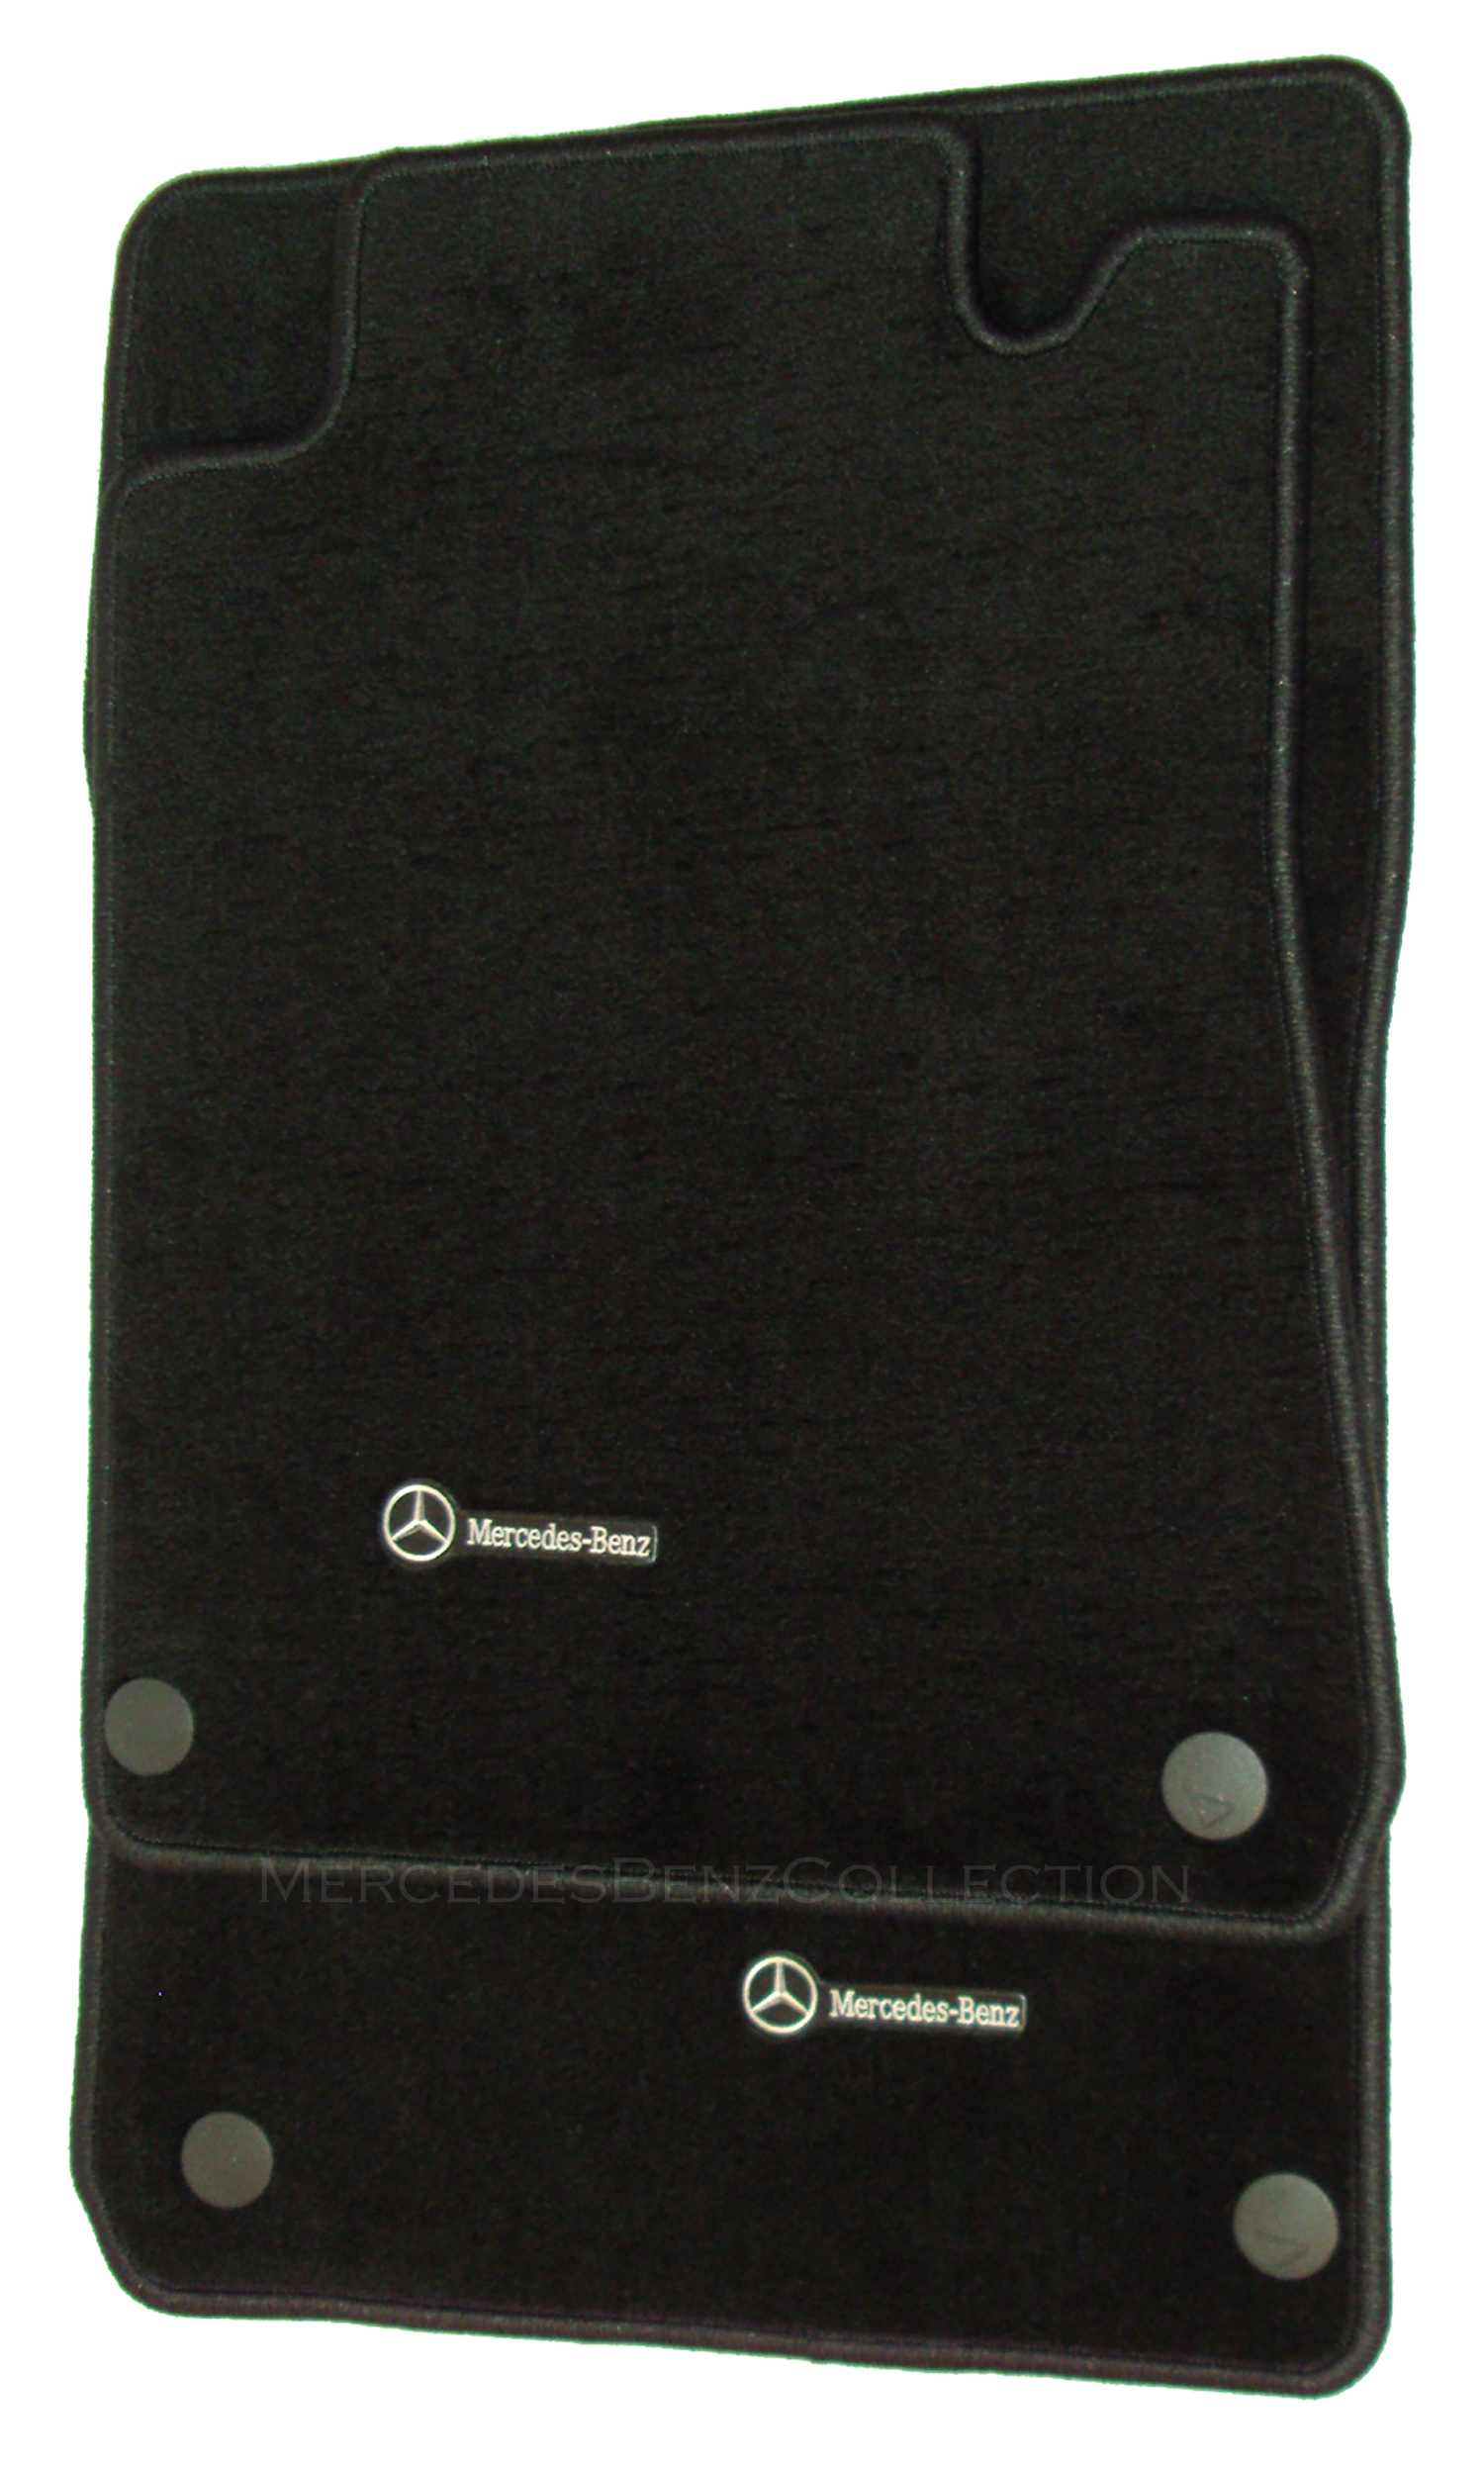 details about mercedes benz genuine oem carpeted floor mats slk class. Cars Review. Best American Auto & Cars Review